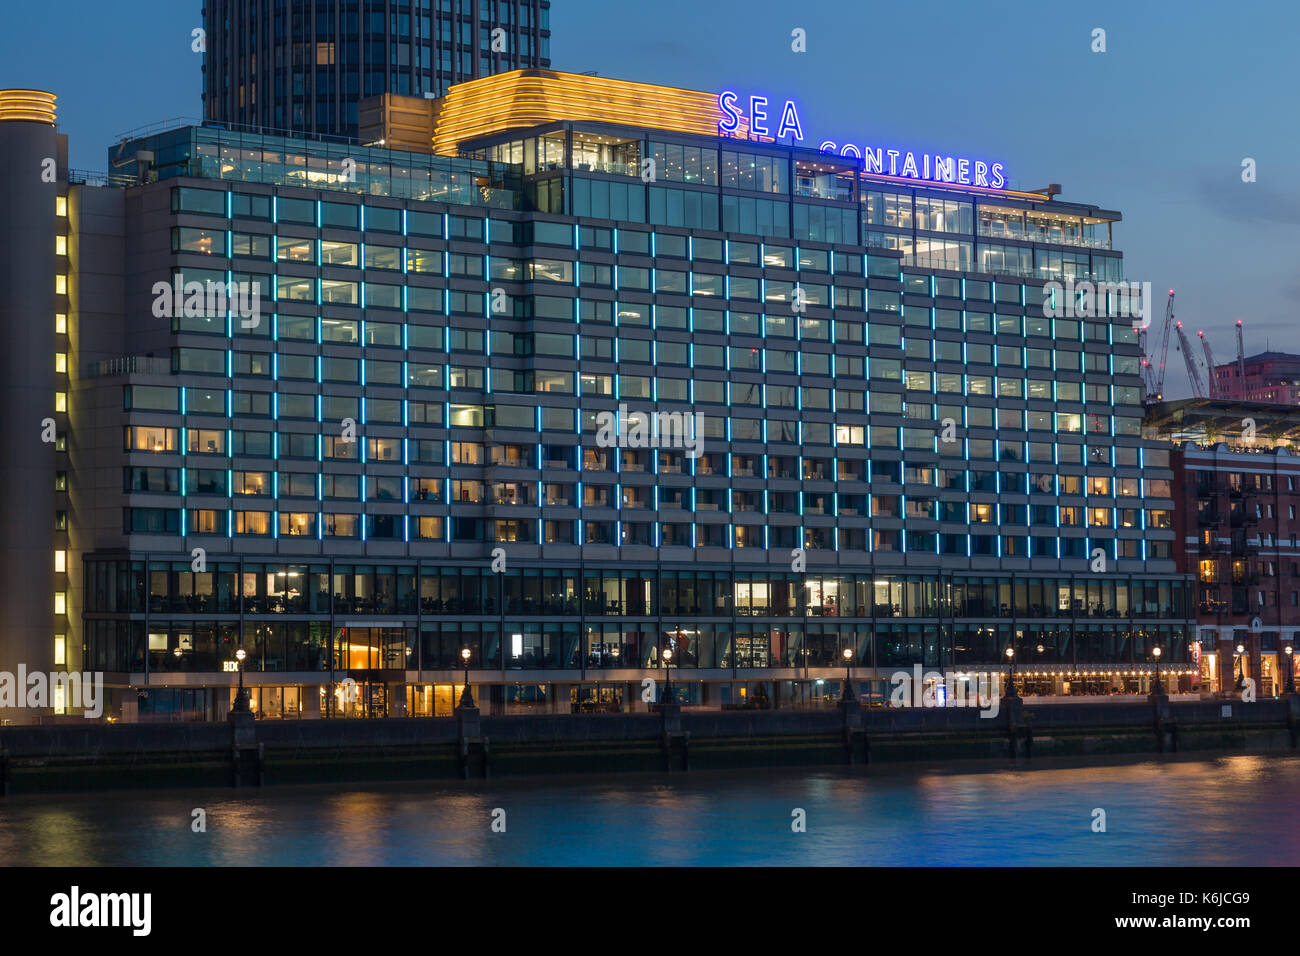 Container Haus London Sea Containers House London Stock Photos And Sea Containers